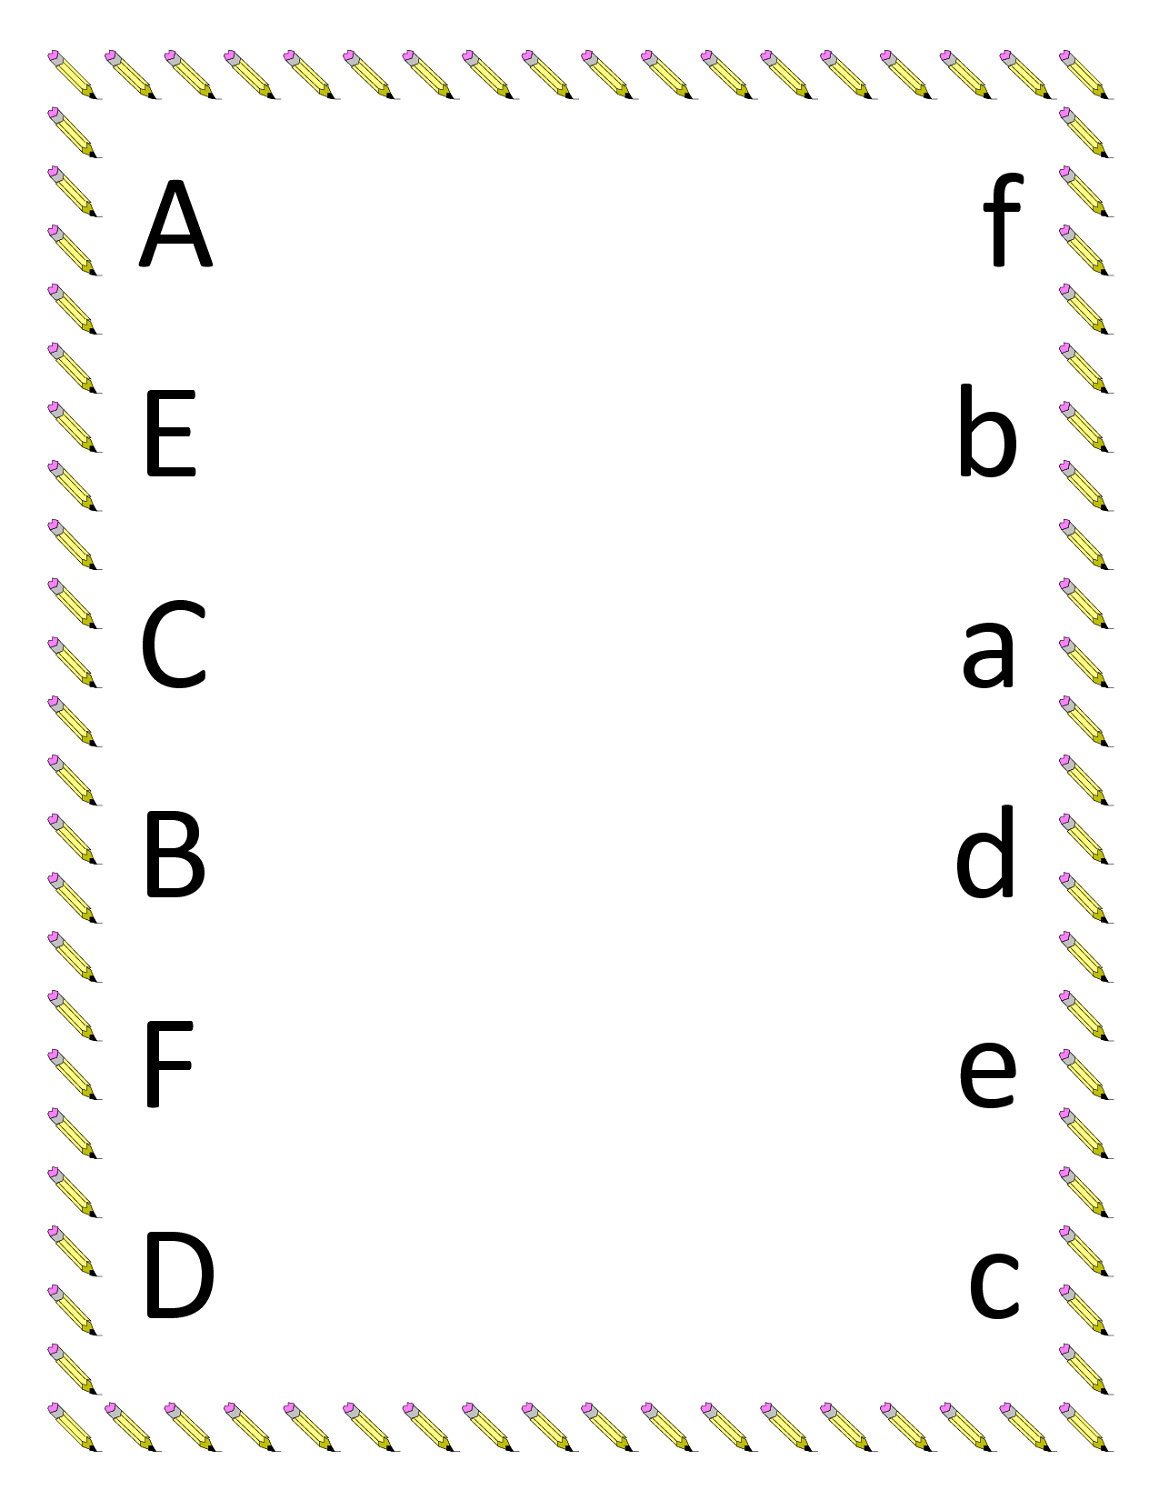 worksheet for nursery alphabet - Worksheet For Nursery